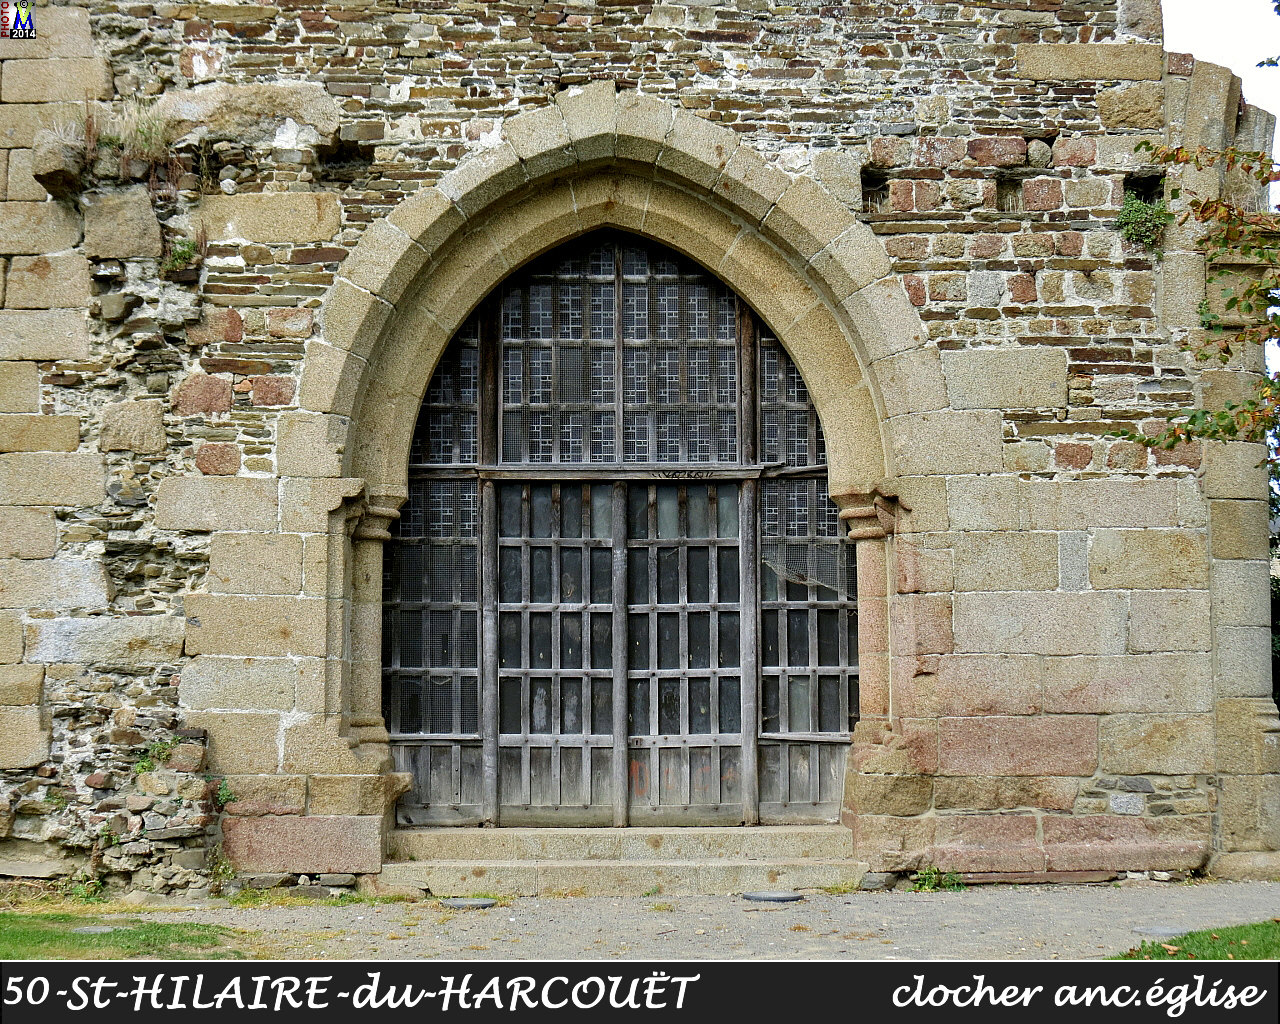 50StHILAIRE-HARCOUET_clocher_104.jpg